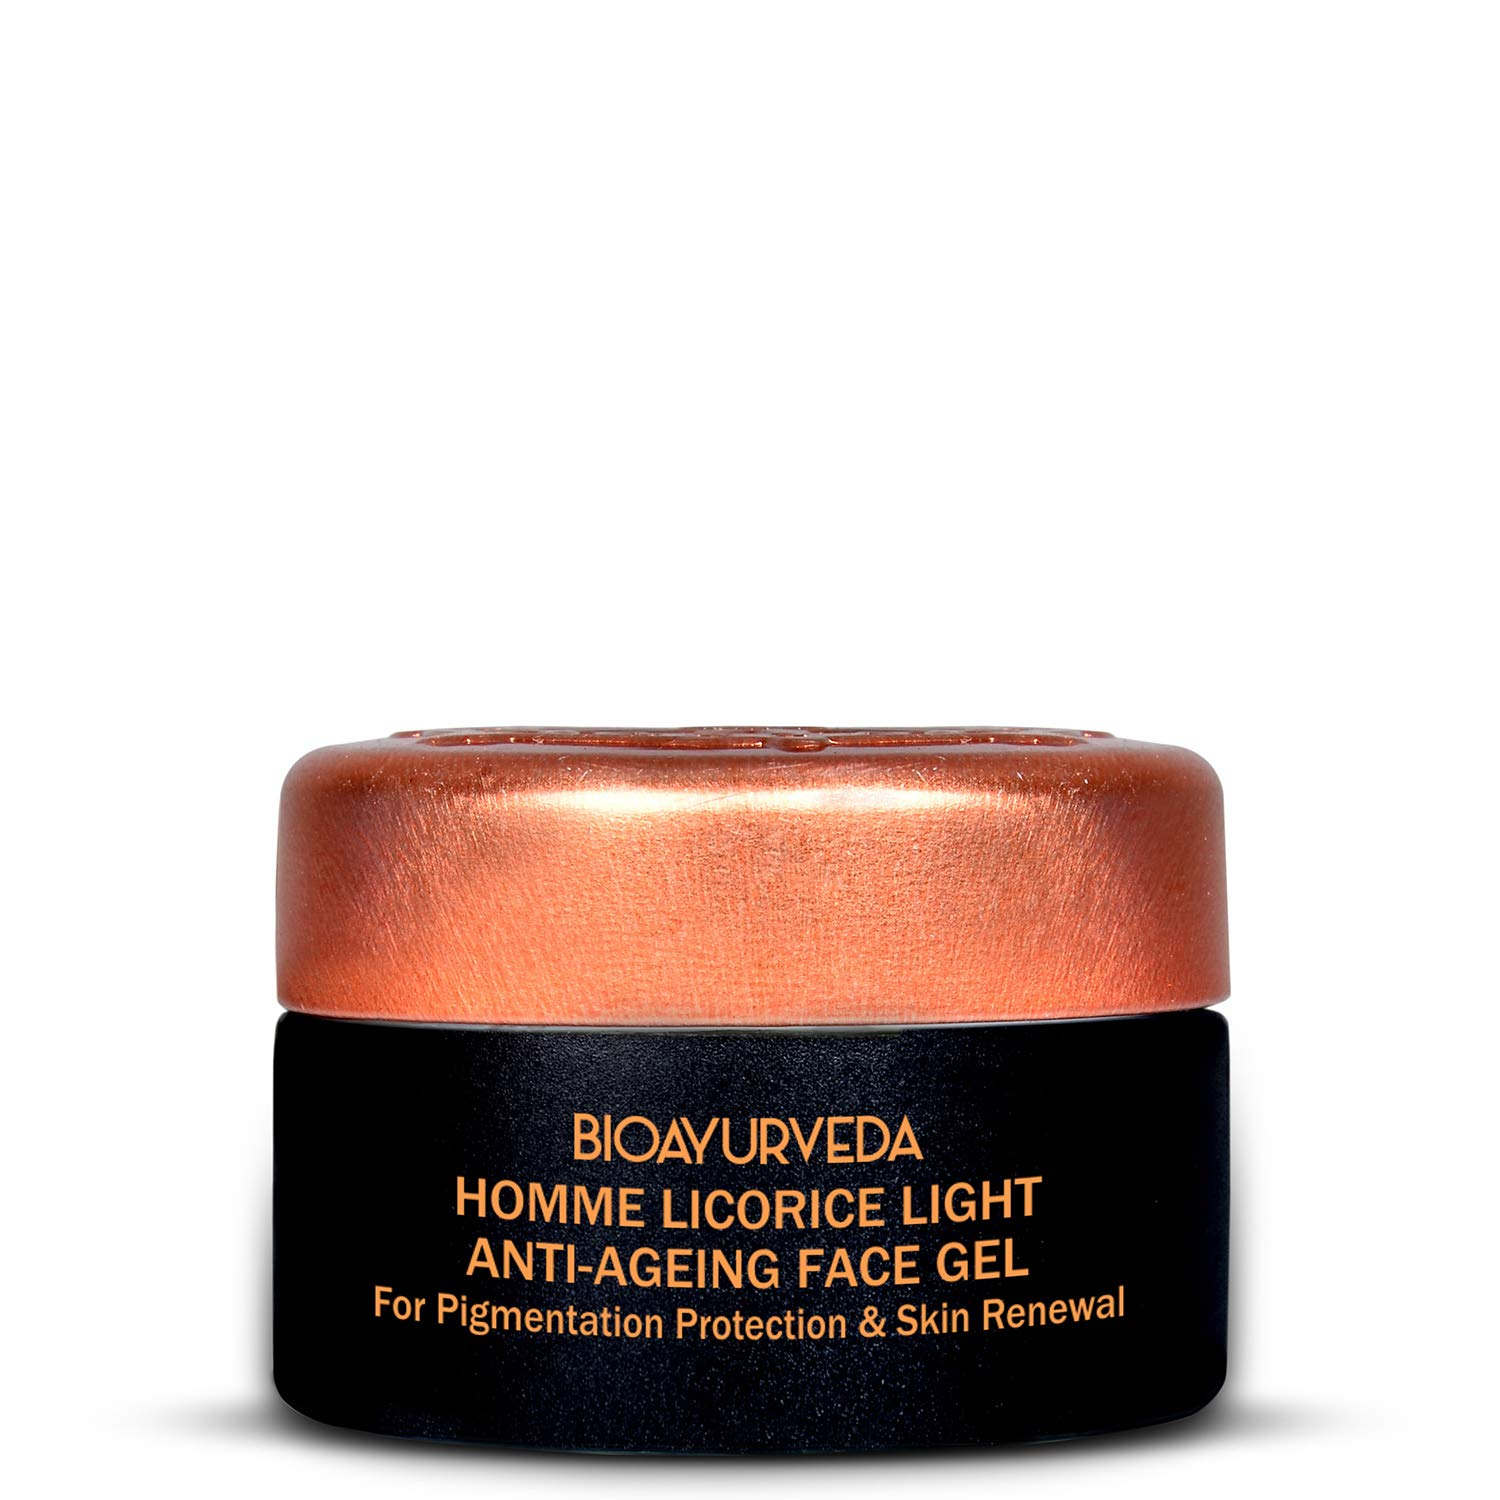 BIOAYURVEDA Homme Licorice Lightening Face Gel with Essential Oil-Healing of Acne, Clogged Pores, Dark Spots, Puffiness| Organic Facial & Eye Care Cream Gel Moisturizer| All Type Skin Care| (0.7 Oz)